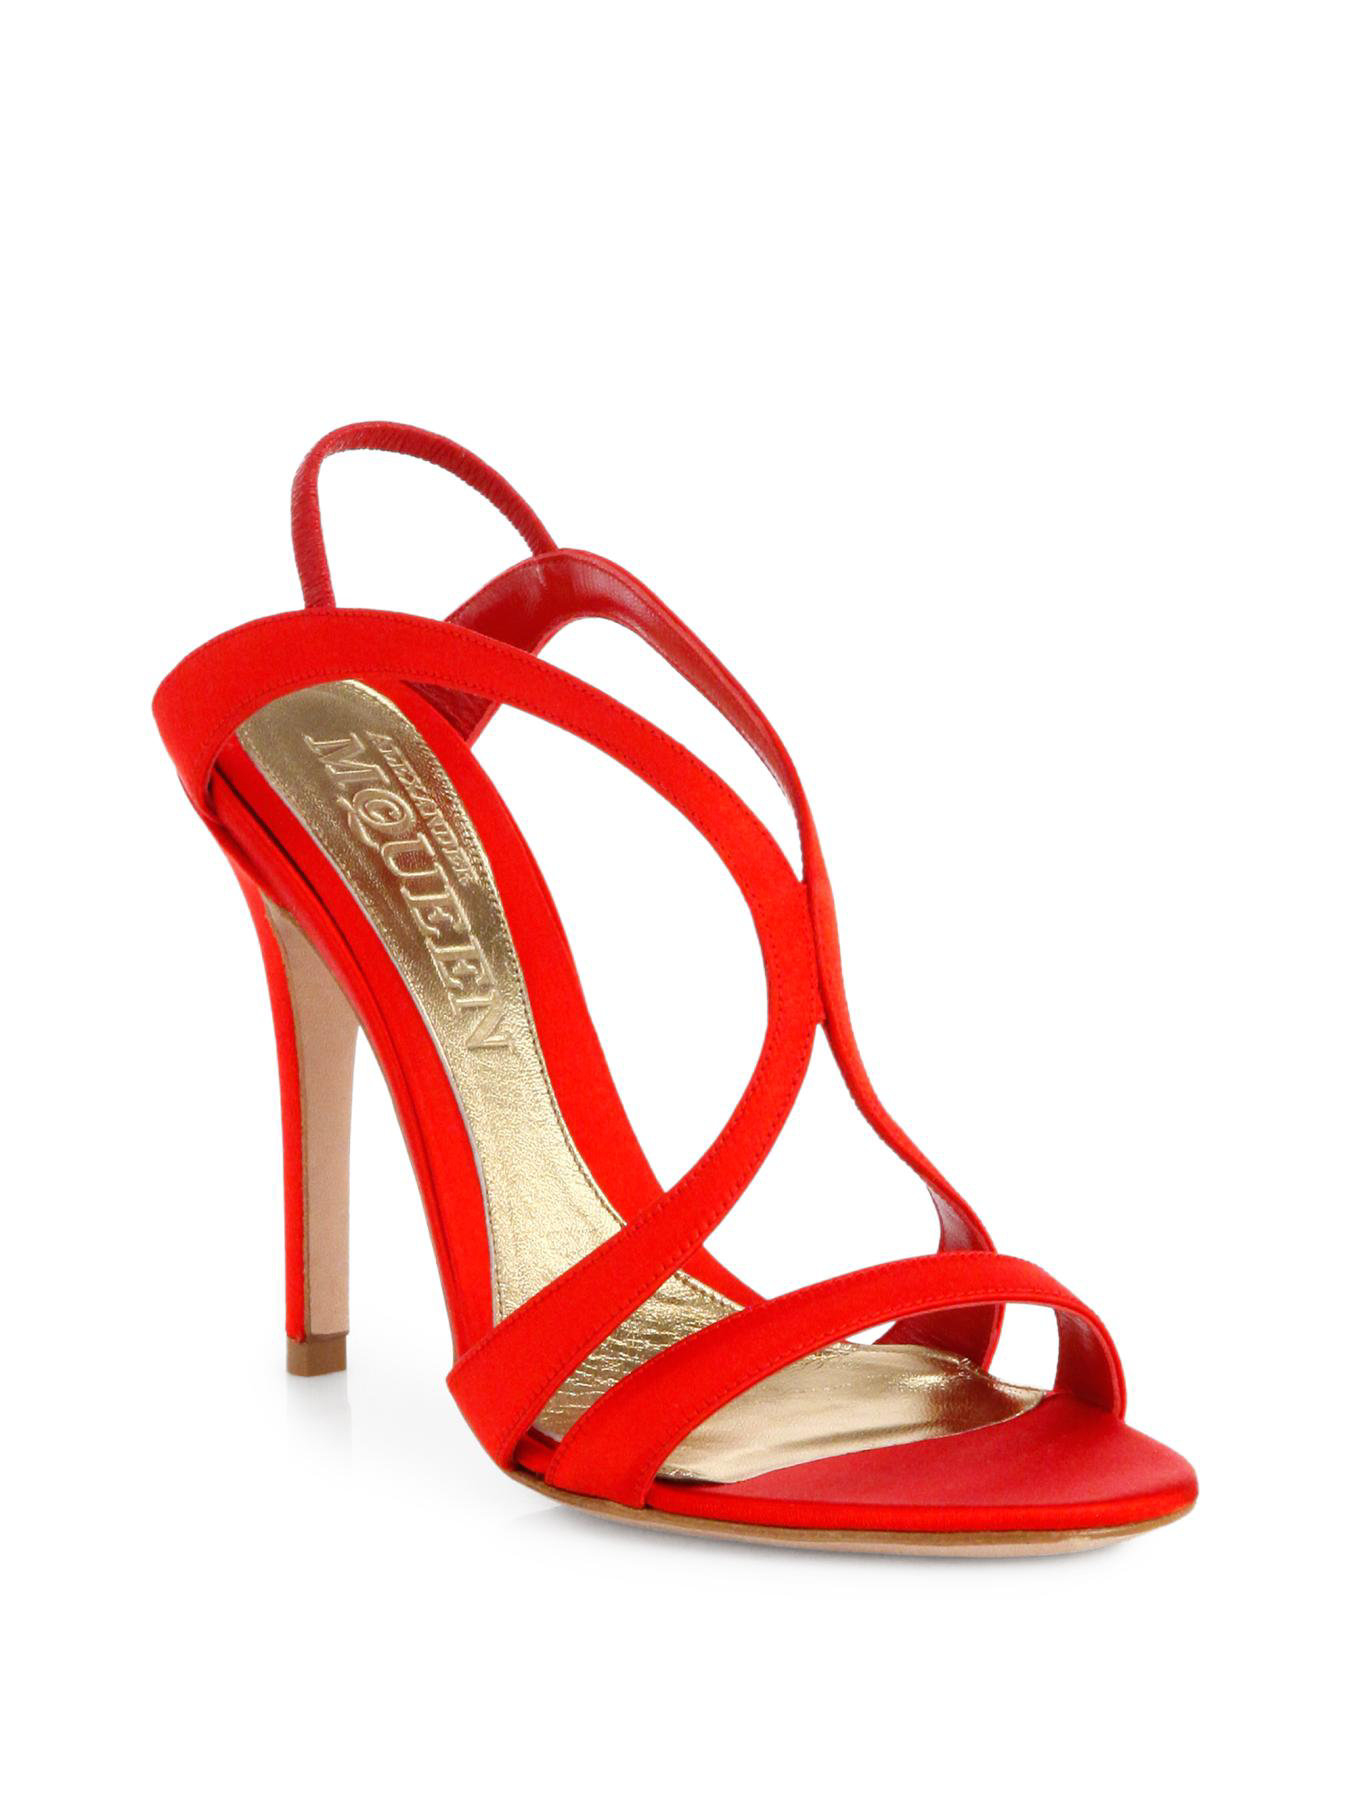 678d3eb0c6de alexander-mcqueen-red-satin-strappy-sandals -product-1-17525365-0-298991876-normal.jpeg